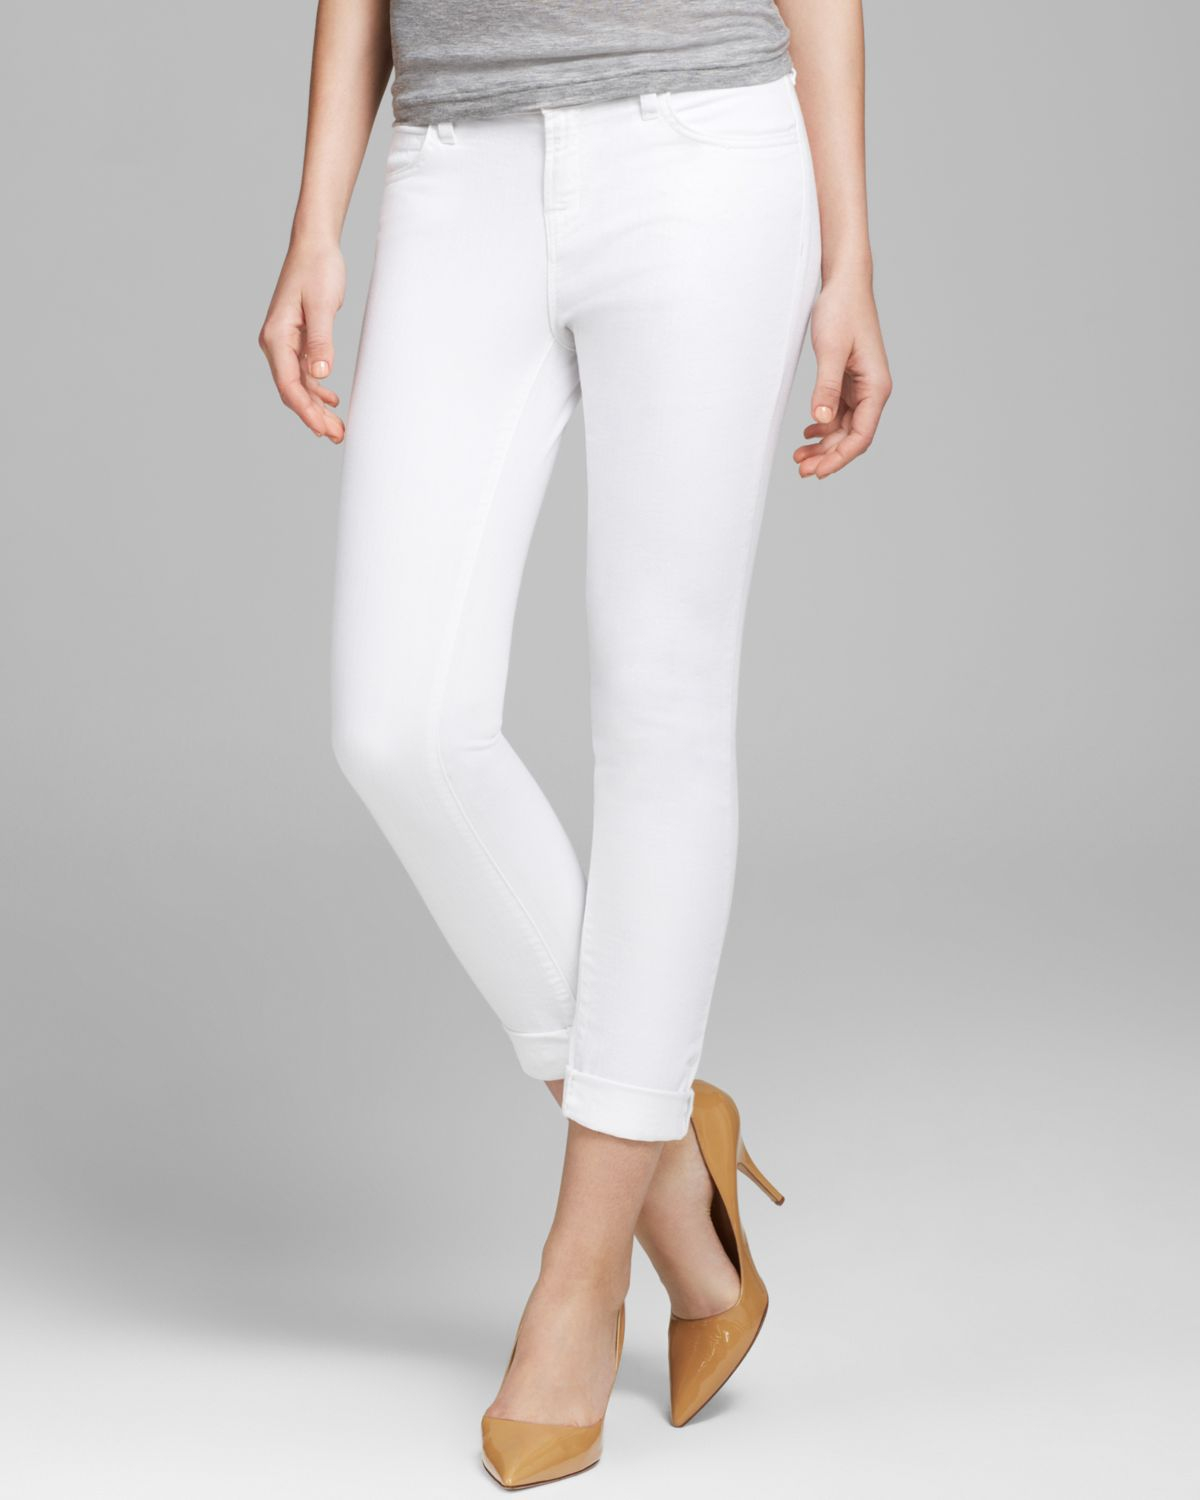 J brand Jeans The Jake Slim Boyfit in Pure White in White | Lyst